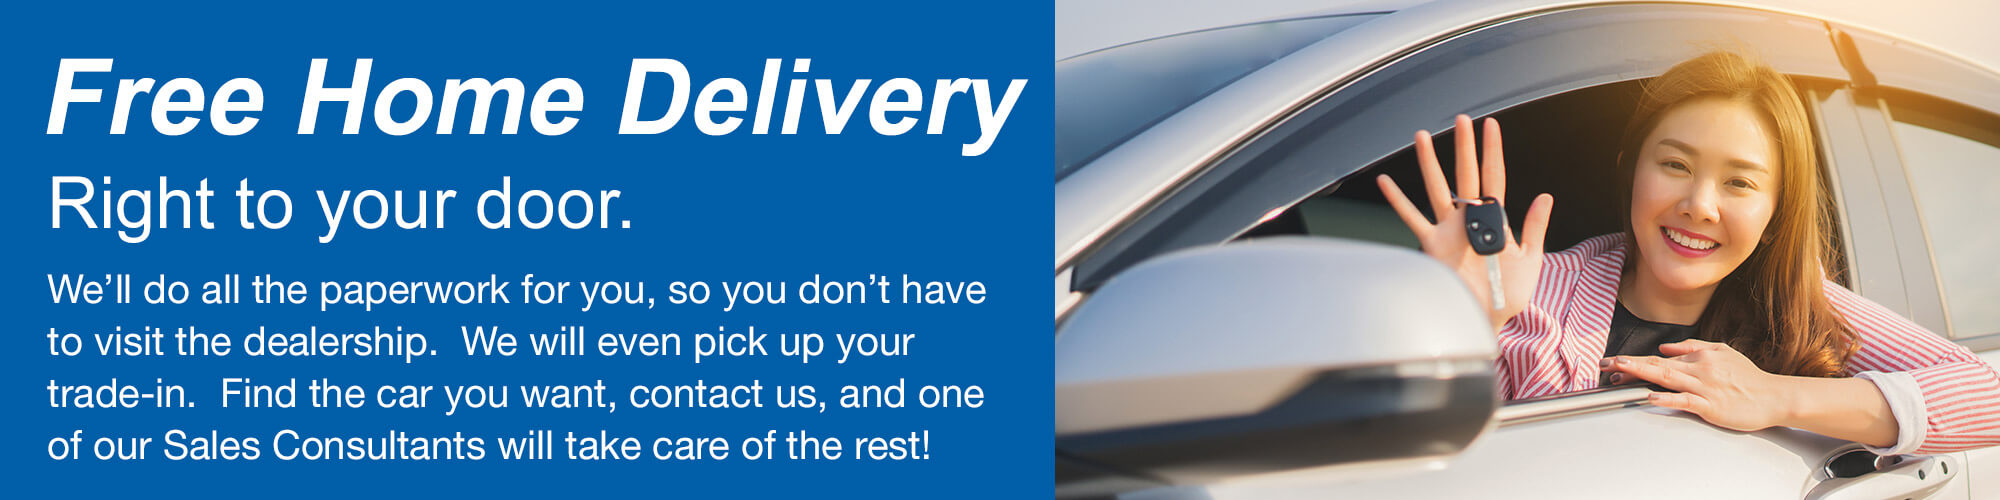 Piercey Honda Free Home Delivery